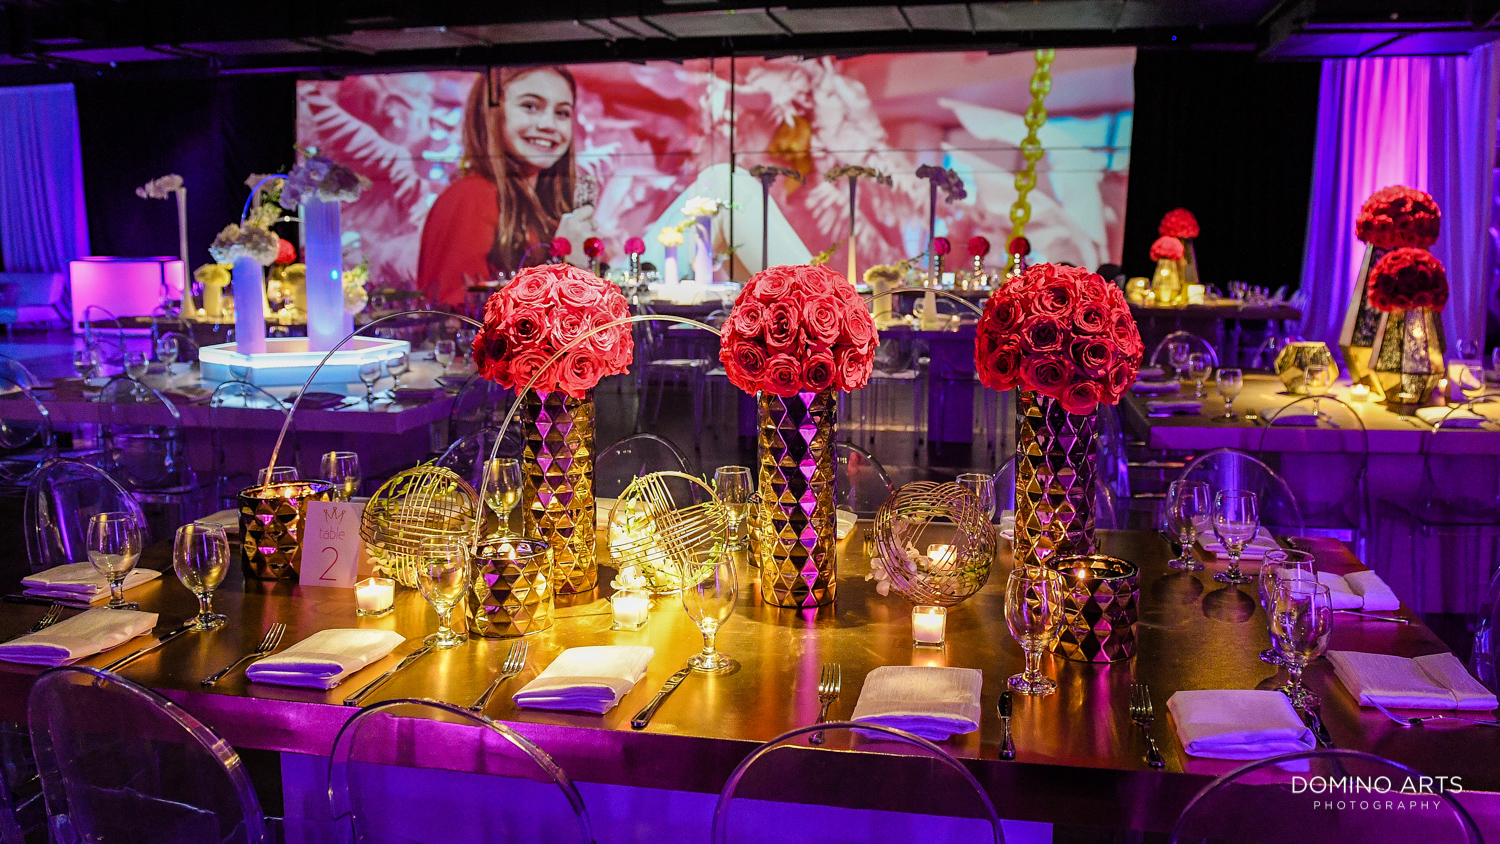 Modern Beautiful Mitzvah decor pictures at Gallery of Amazing Things